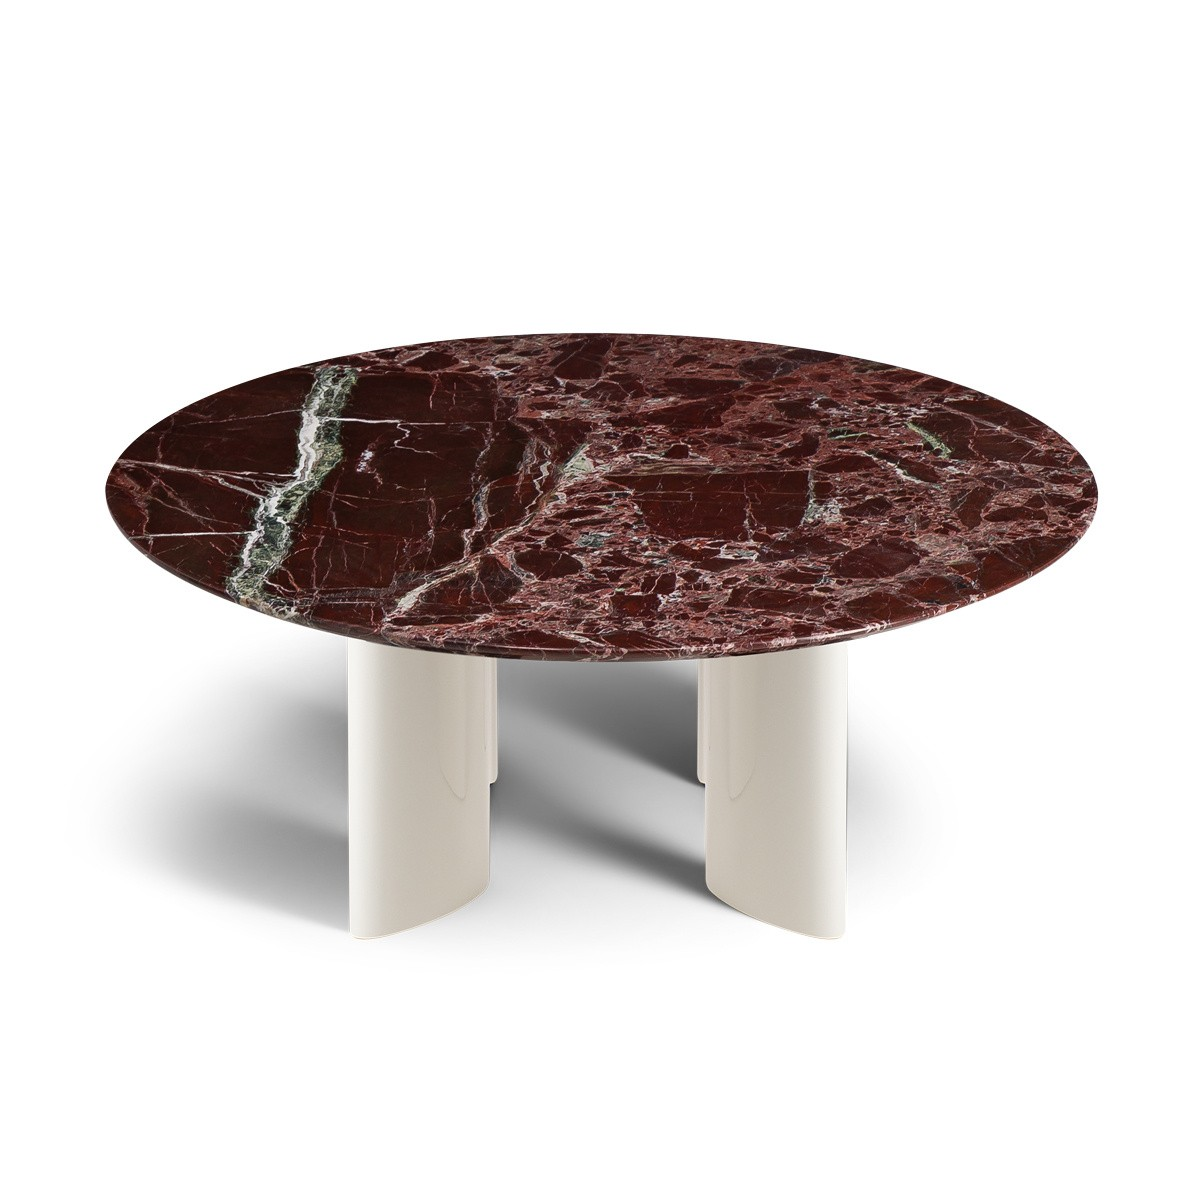 Carlotta Coffee Table, Cream White Lacquered Legs and Red Marble